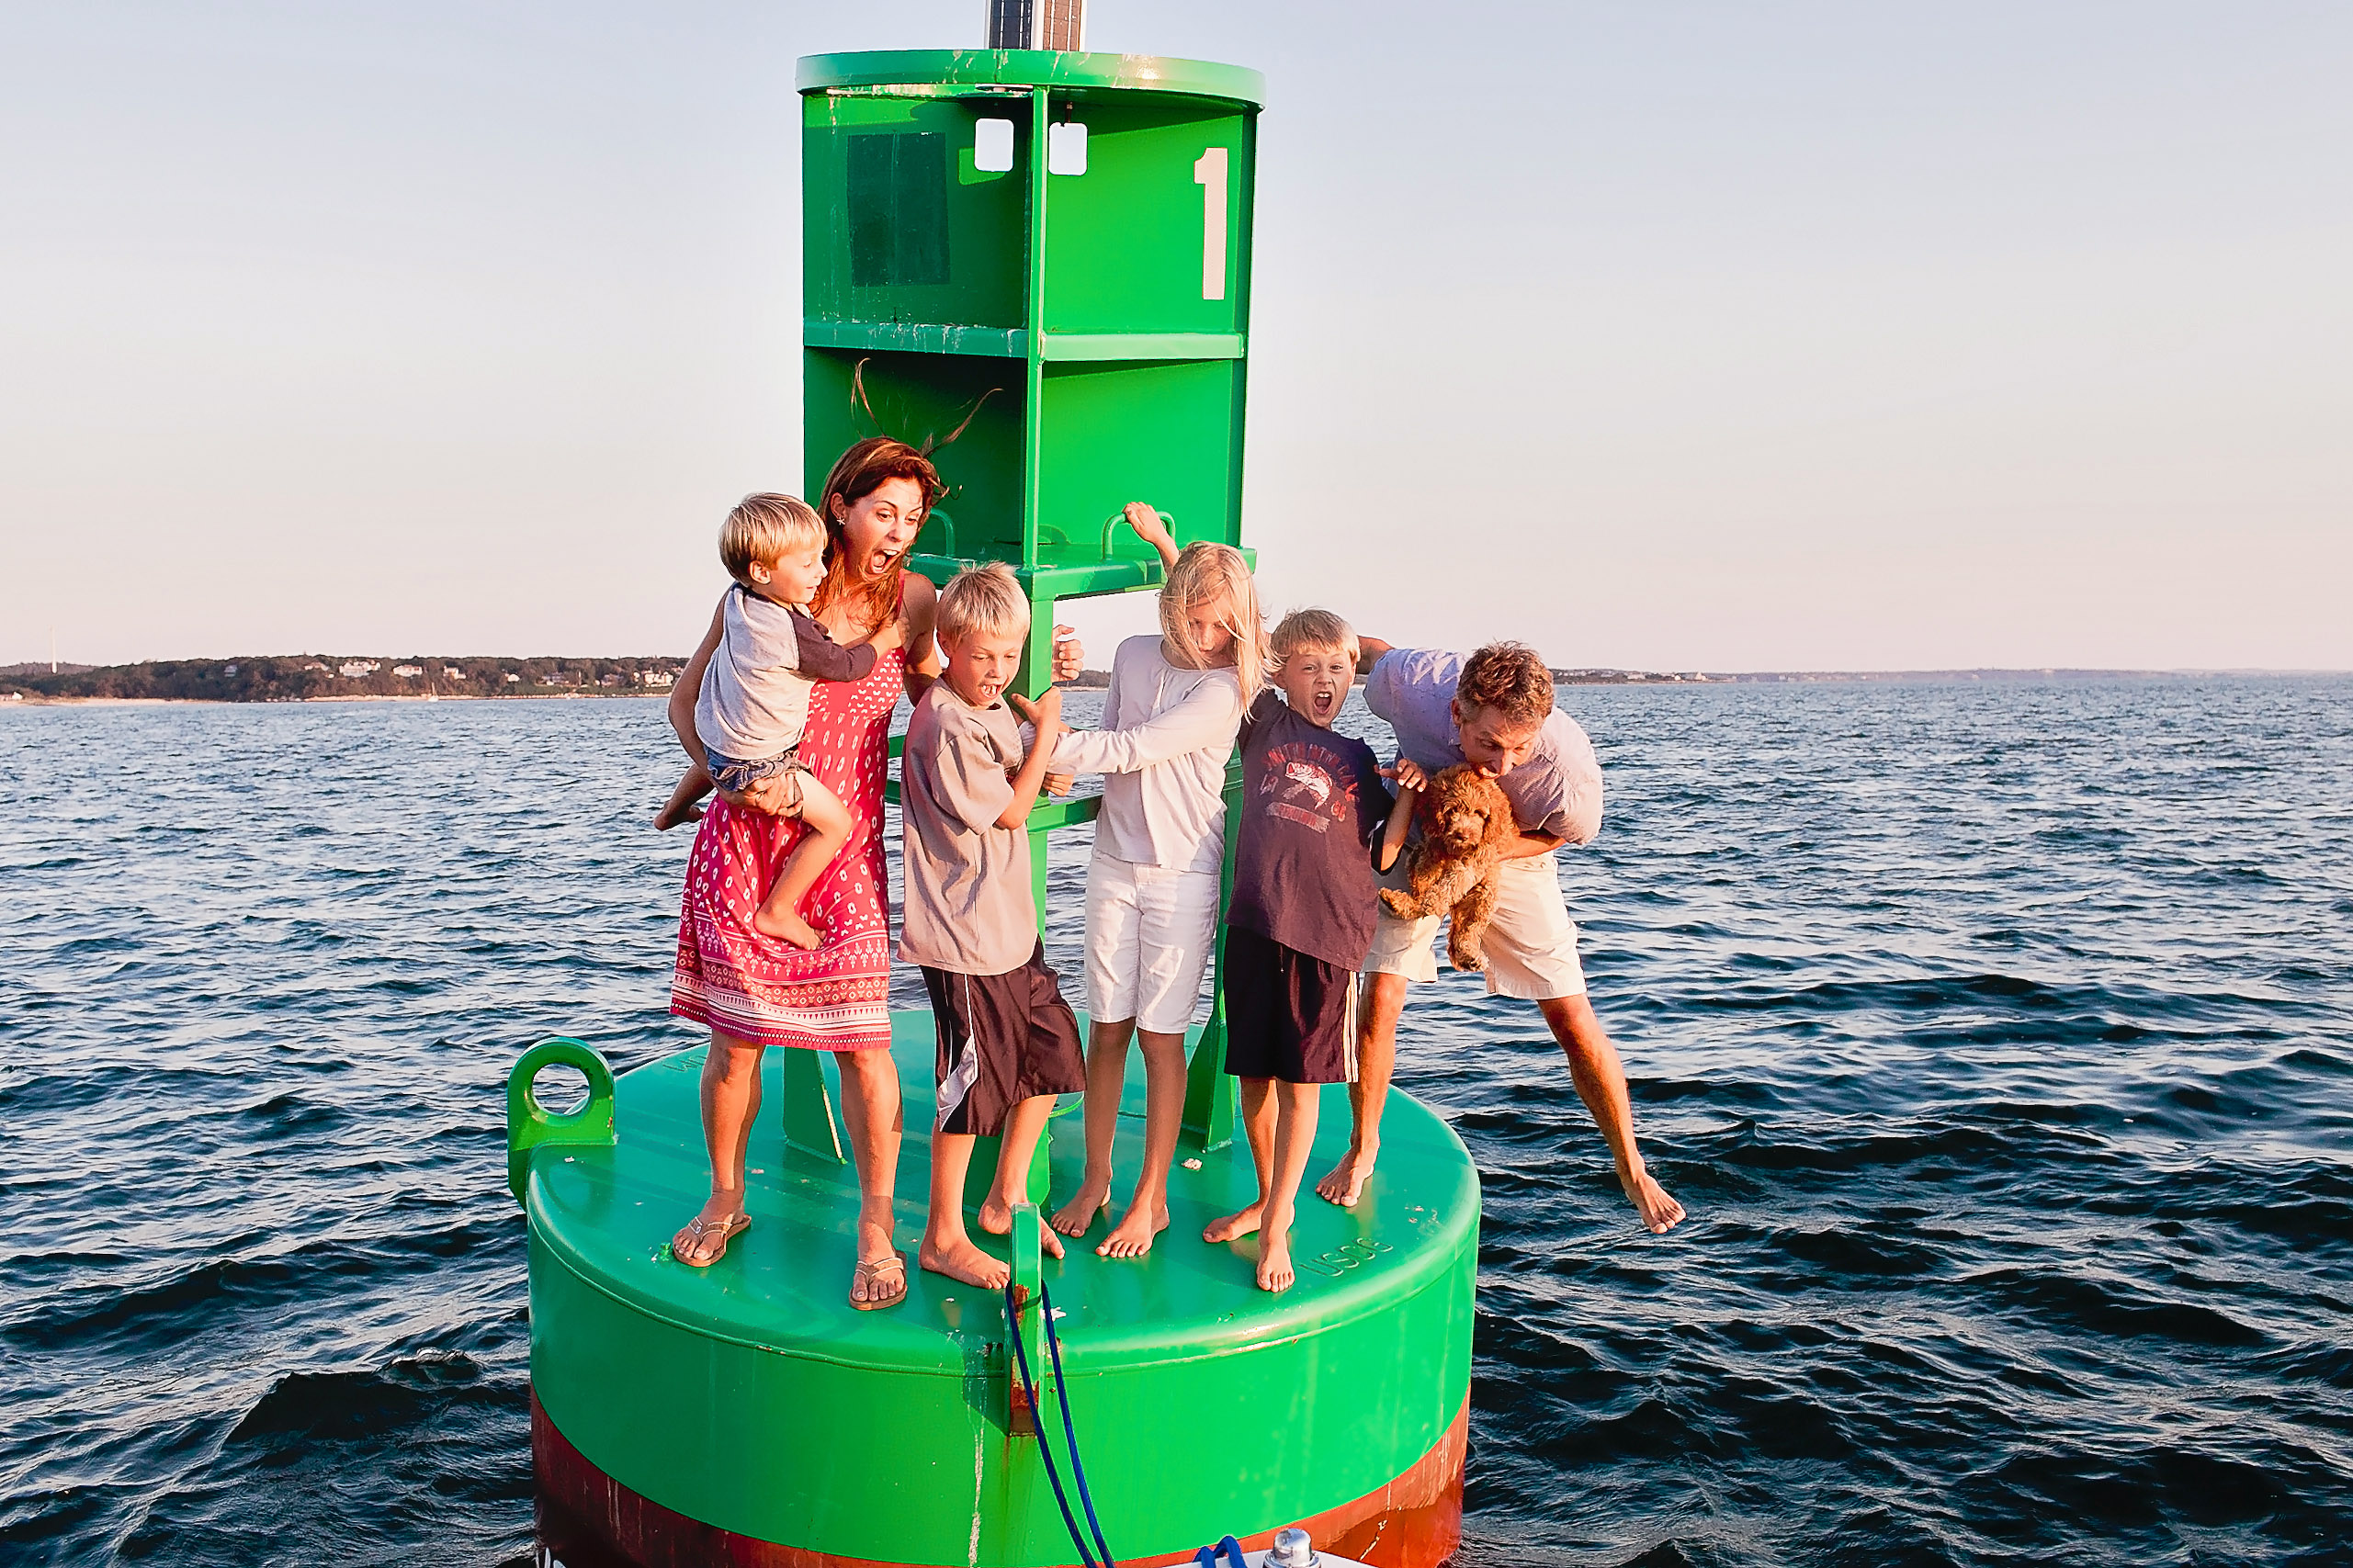 family standing on green buoy in middle of the ocean